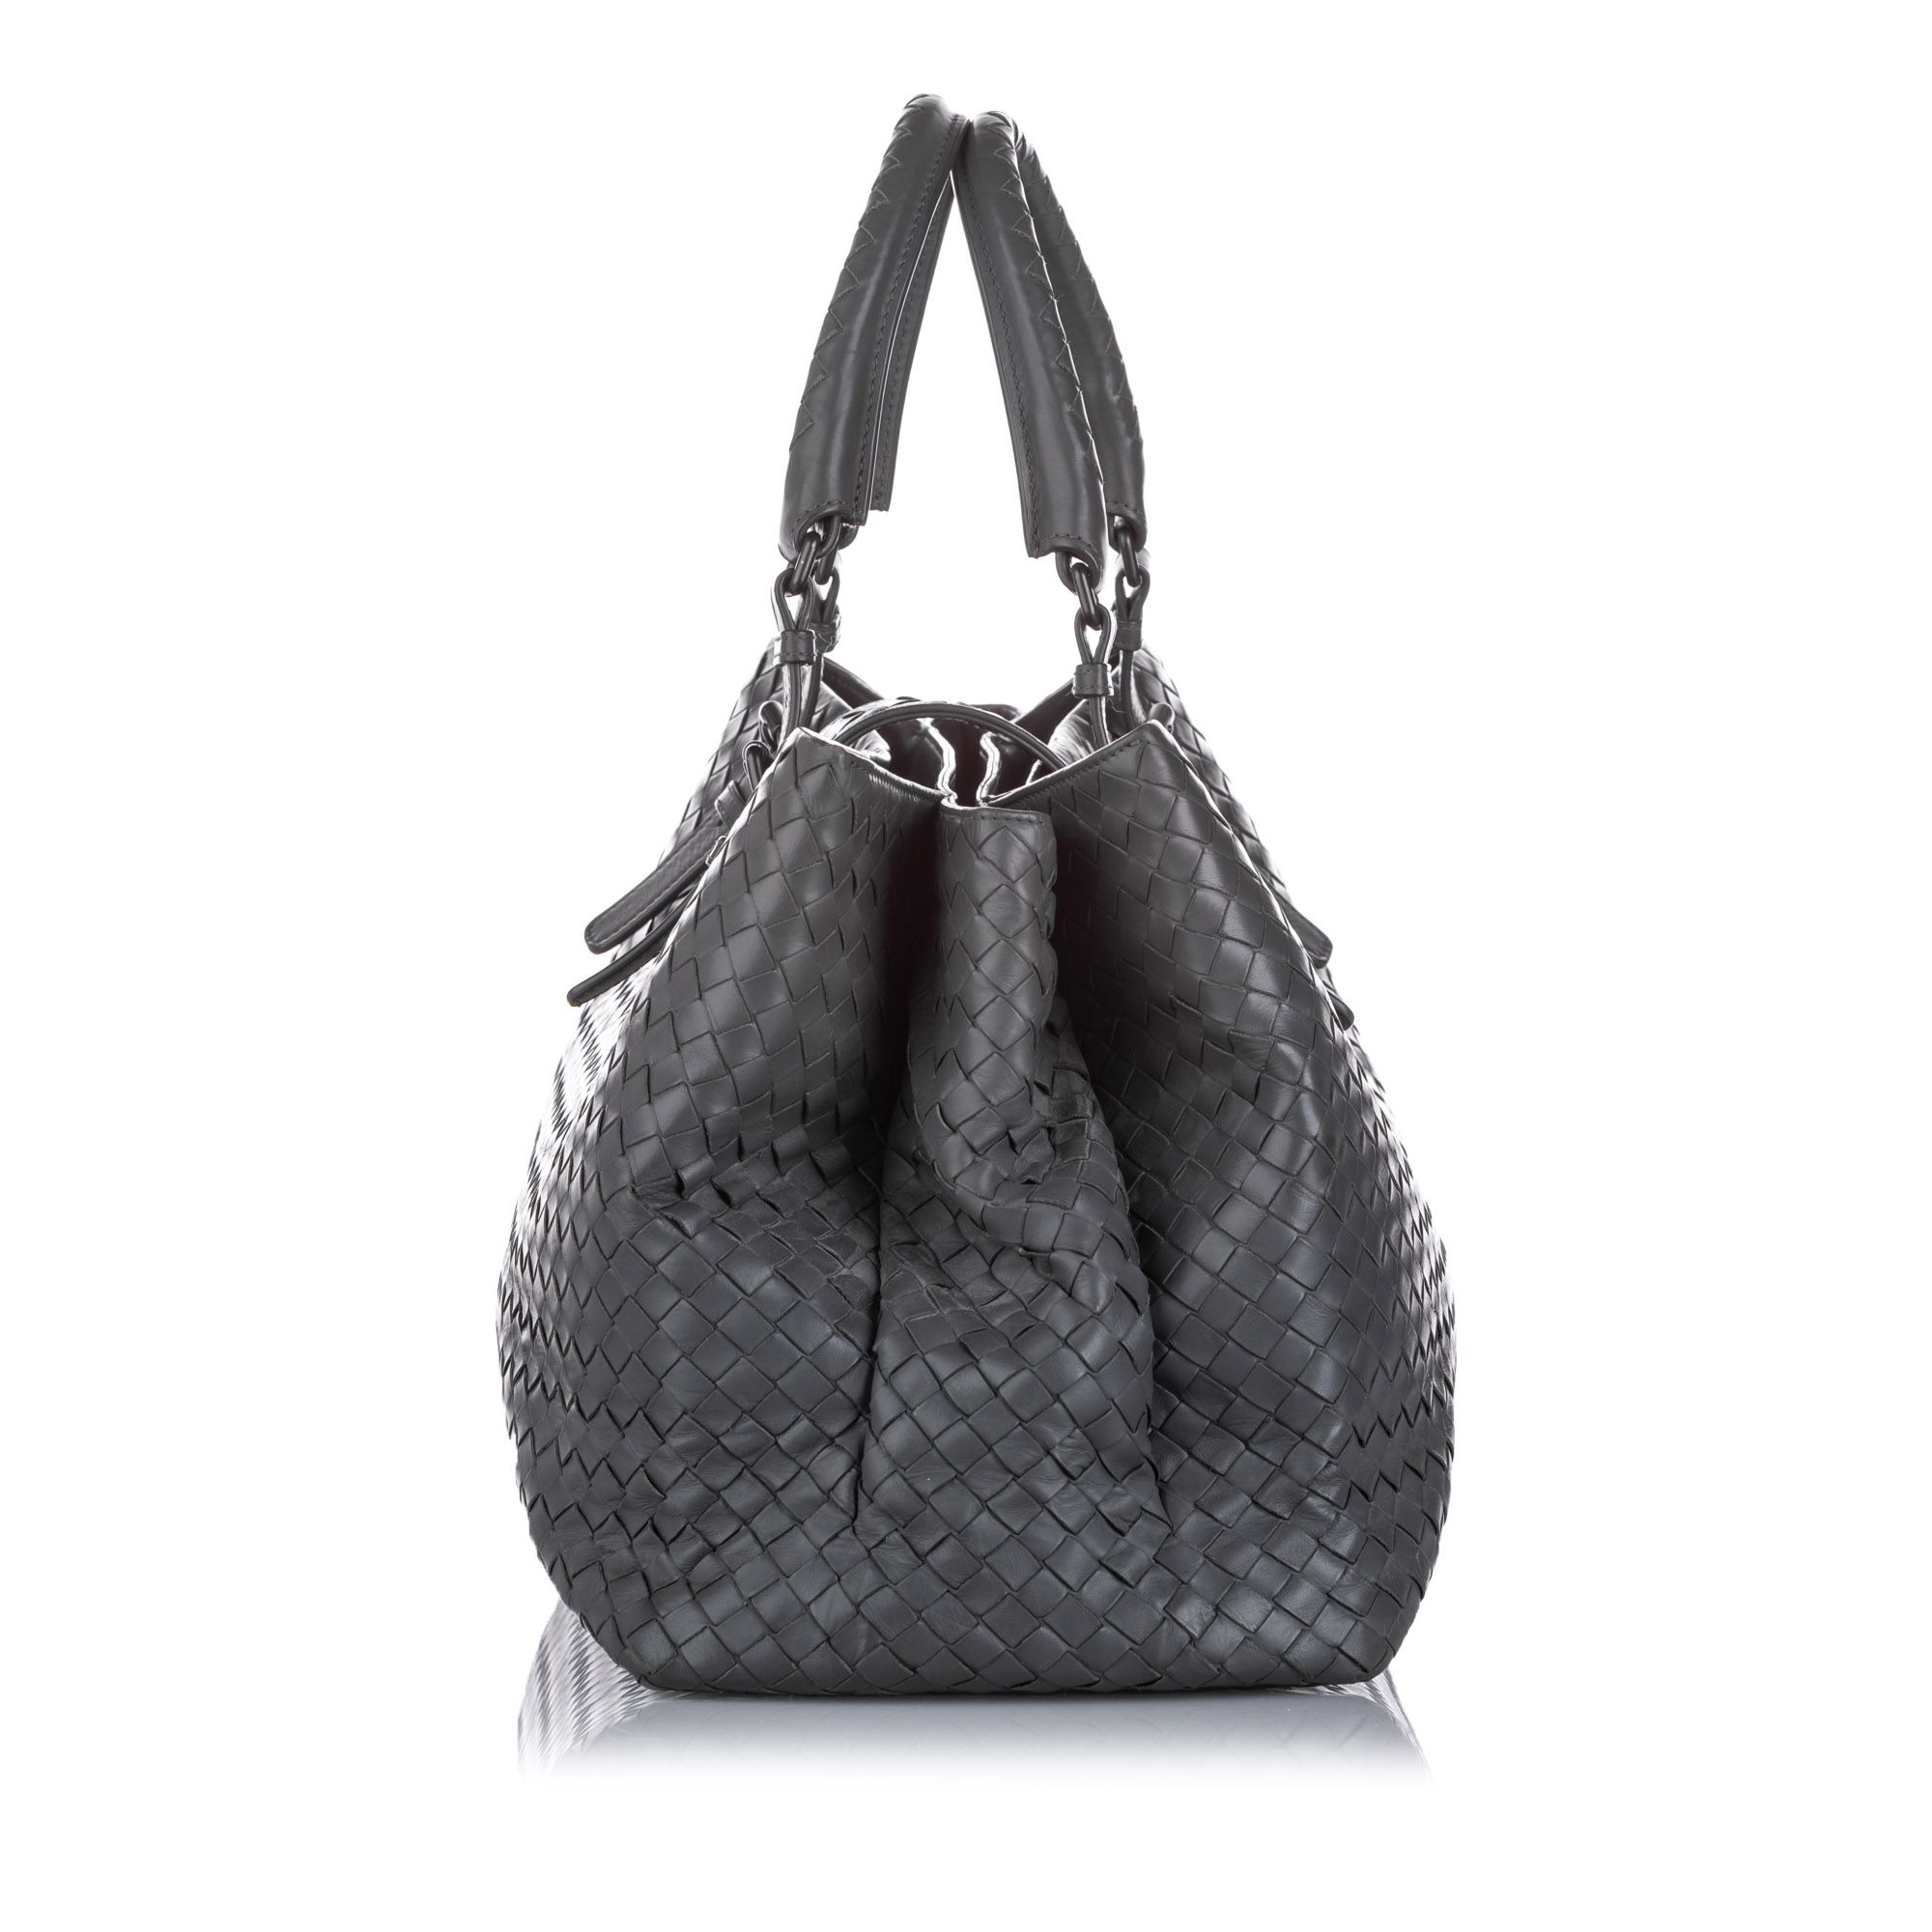 Vintage Bottega Veneta Large Roma Intrecciato Tote Bag Gray